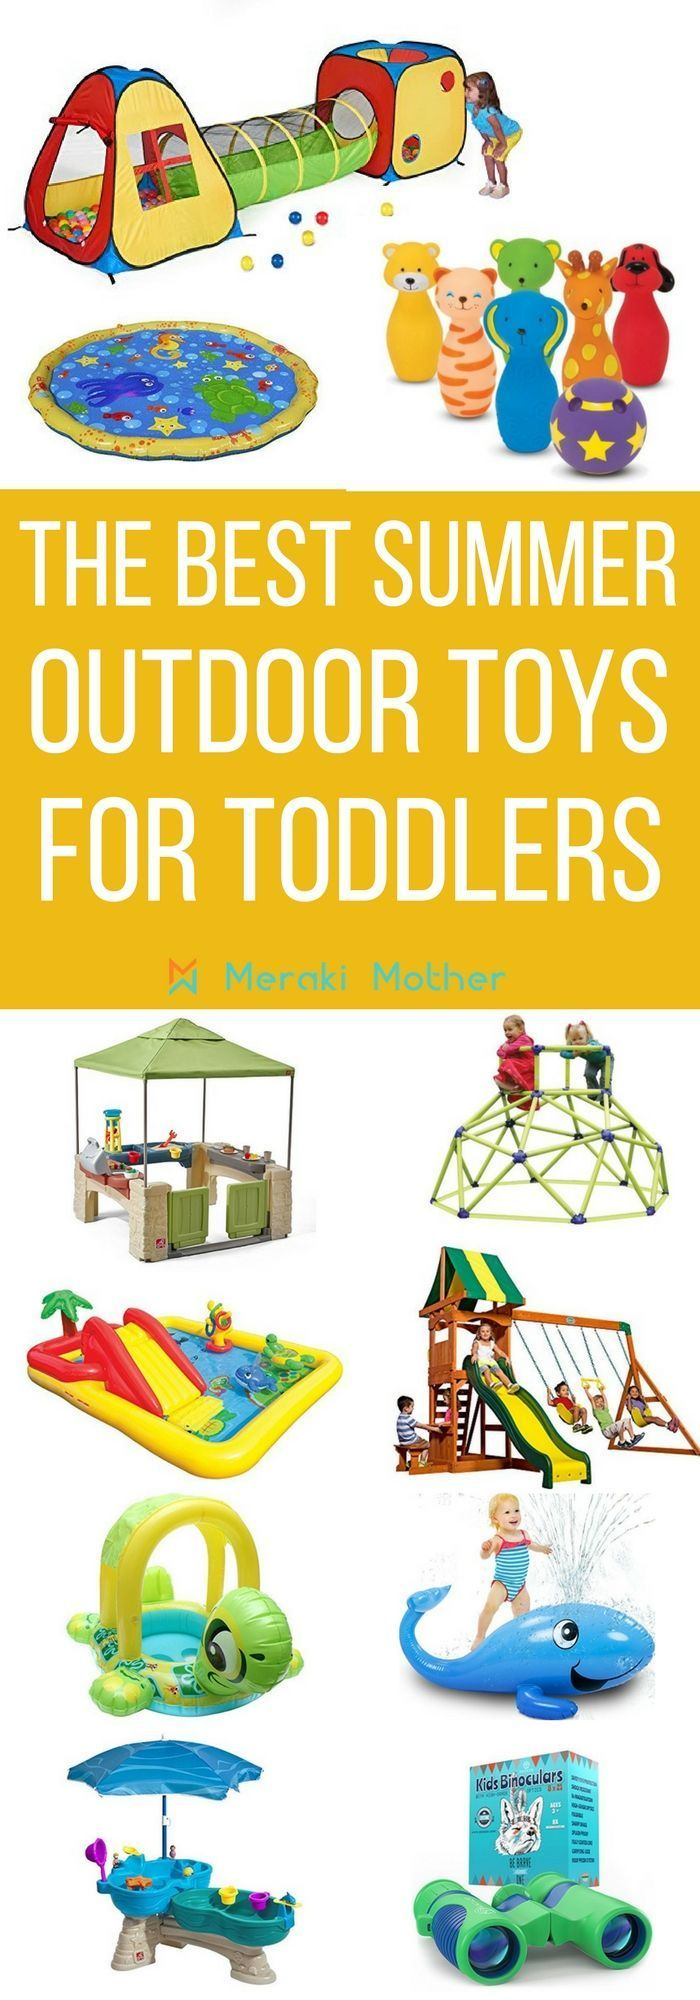 Best Outdoor Toys For Toddlers Outdoor Toys For Toddlers Outside Toys For Boys Outdoor Toys For Kids